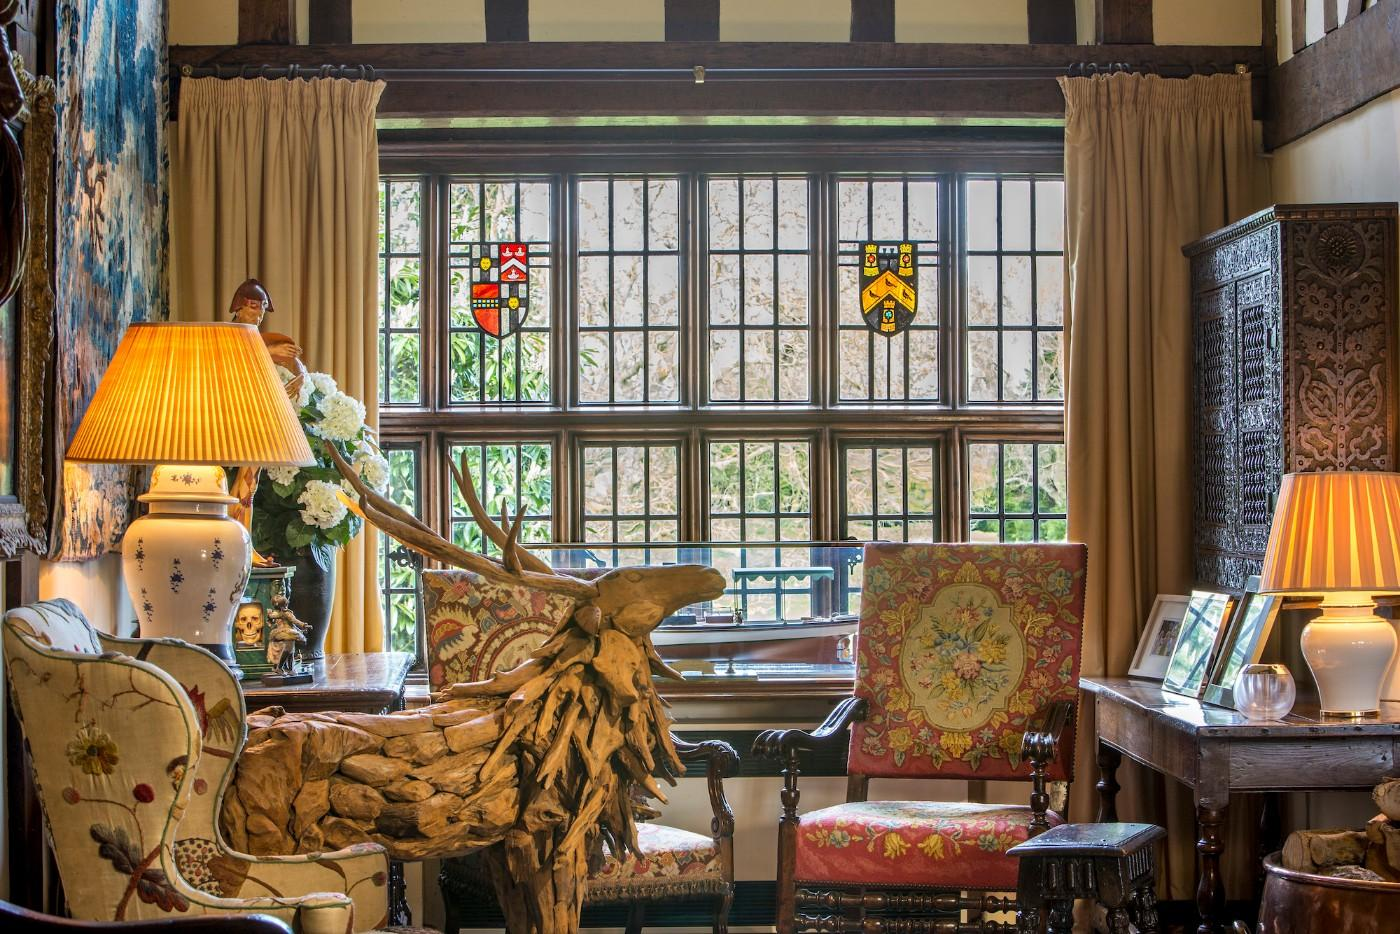 Admirable Eclectic Contents Of 13Th Century Estate To Be Auctioned Uwap Interior Chair Design Uwaporg